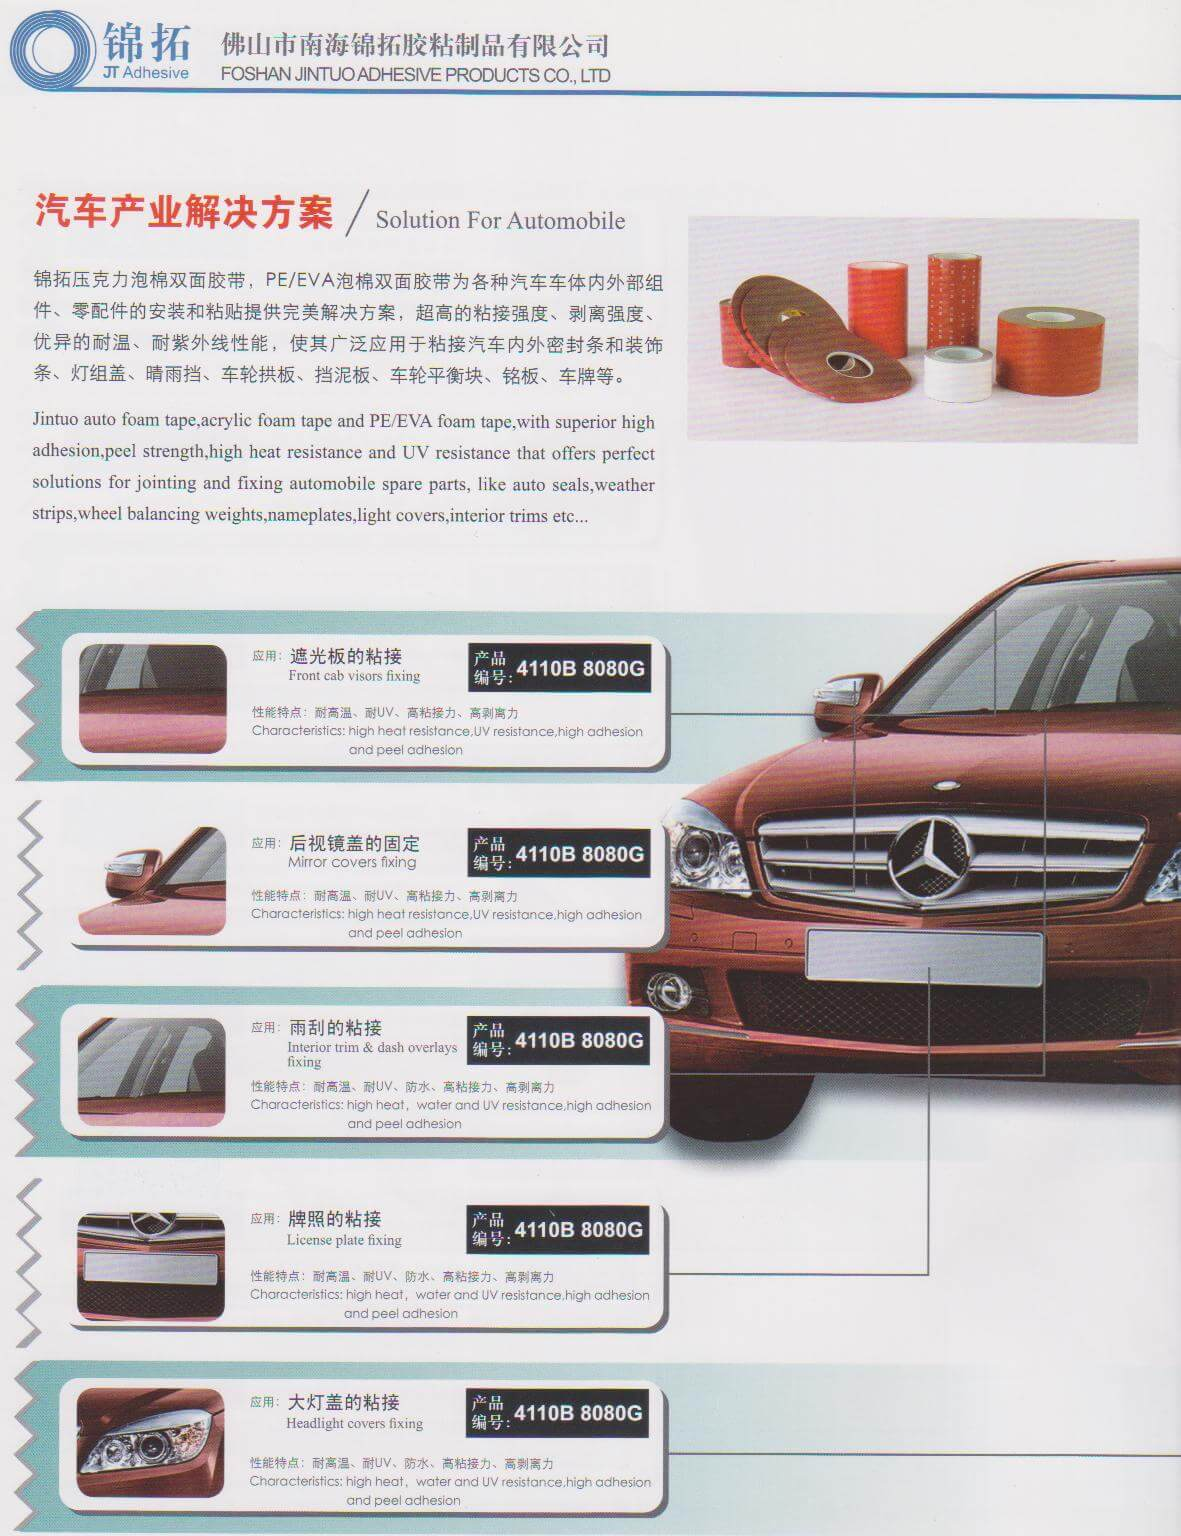 Automobile and car adhesive tape solution | JT Adhesive Tape